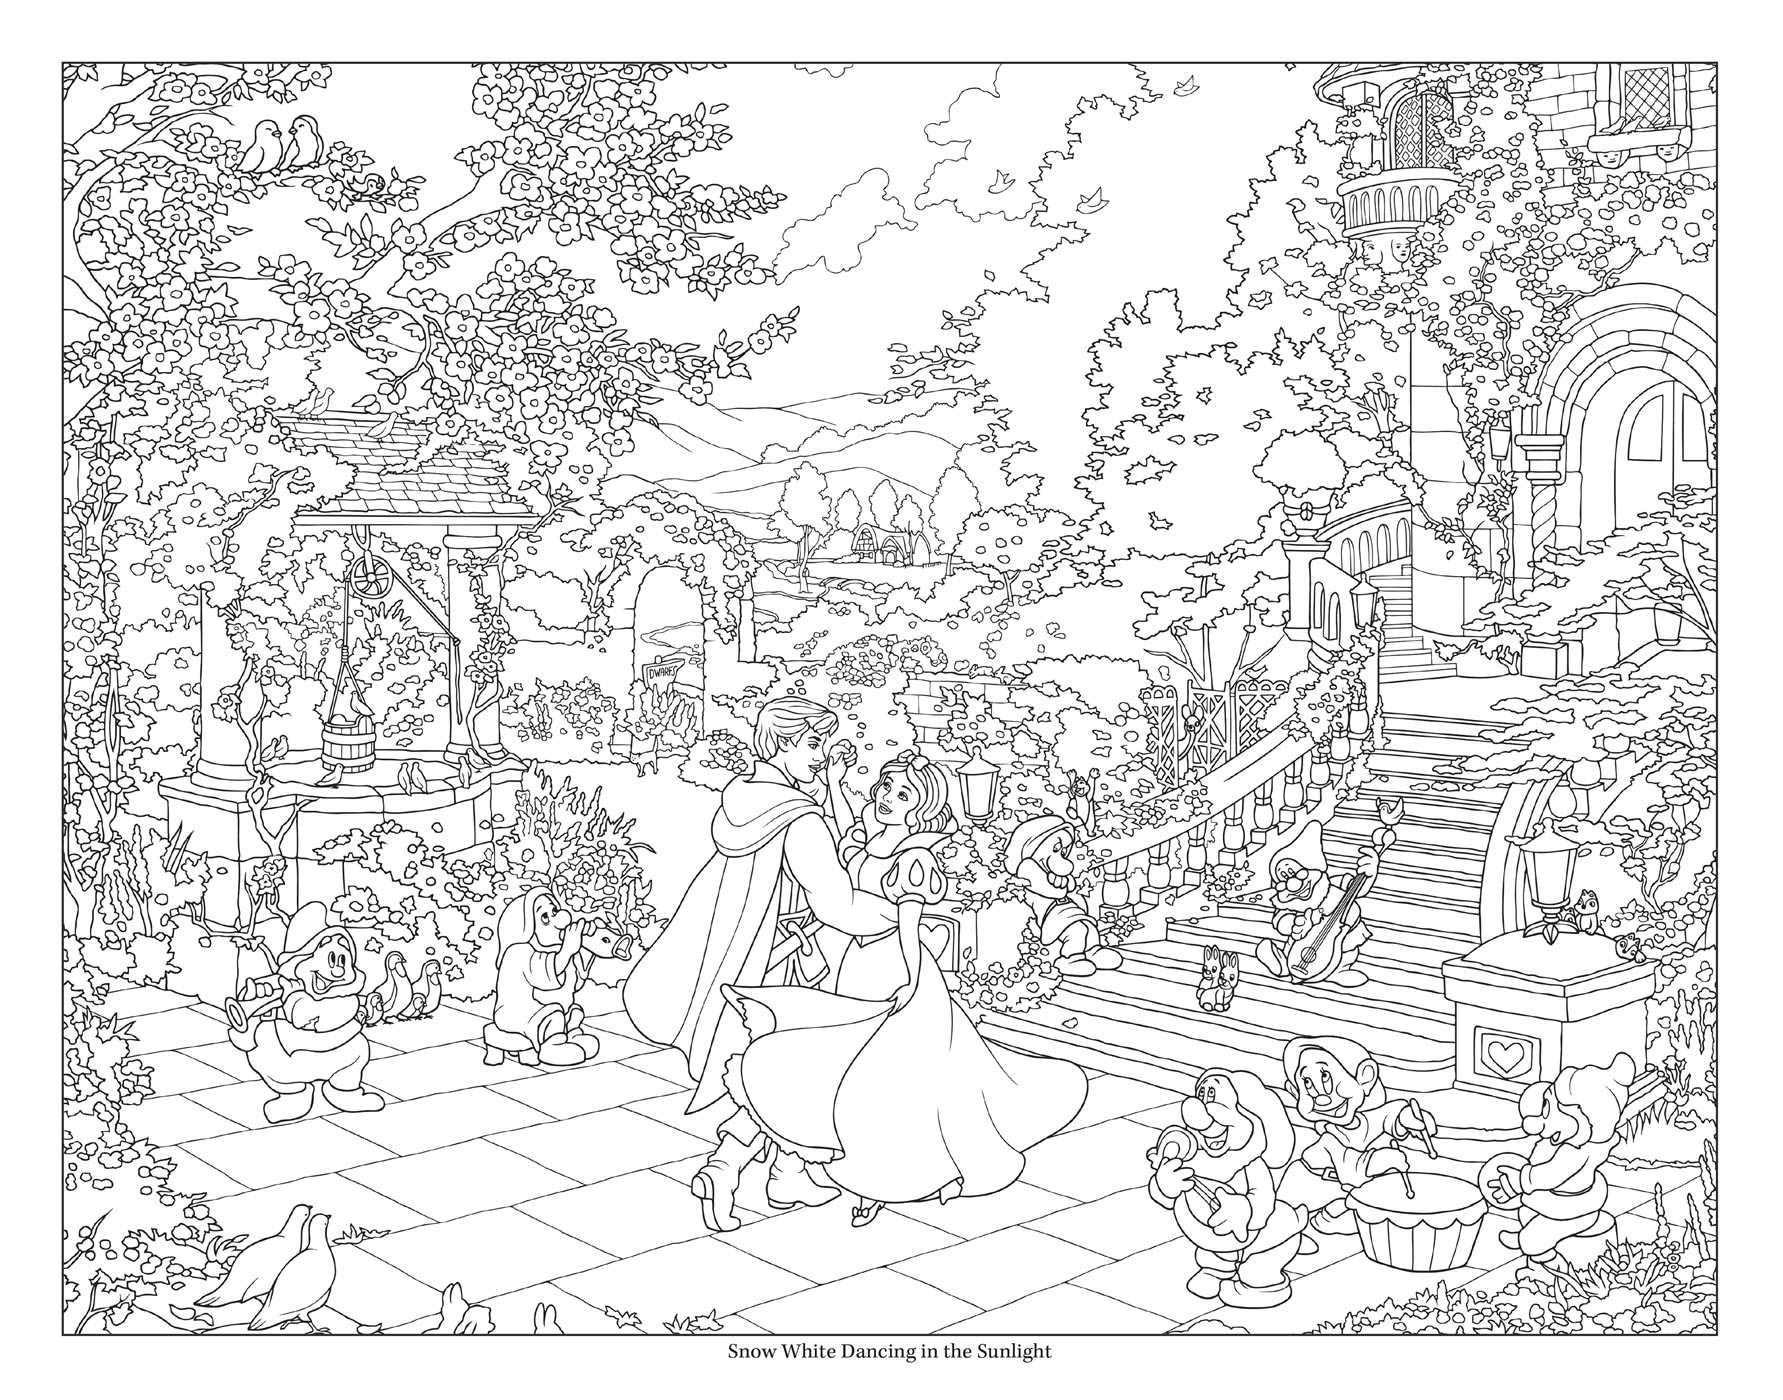 Disney Dreams Collection Thomas Kinkade Studios Disney Princess Coloring Book Paperback A Disney Coloring Pages Disney Princess Coloring Pages Coloring Books